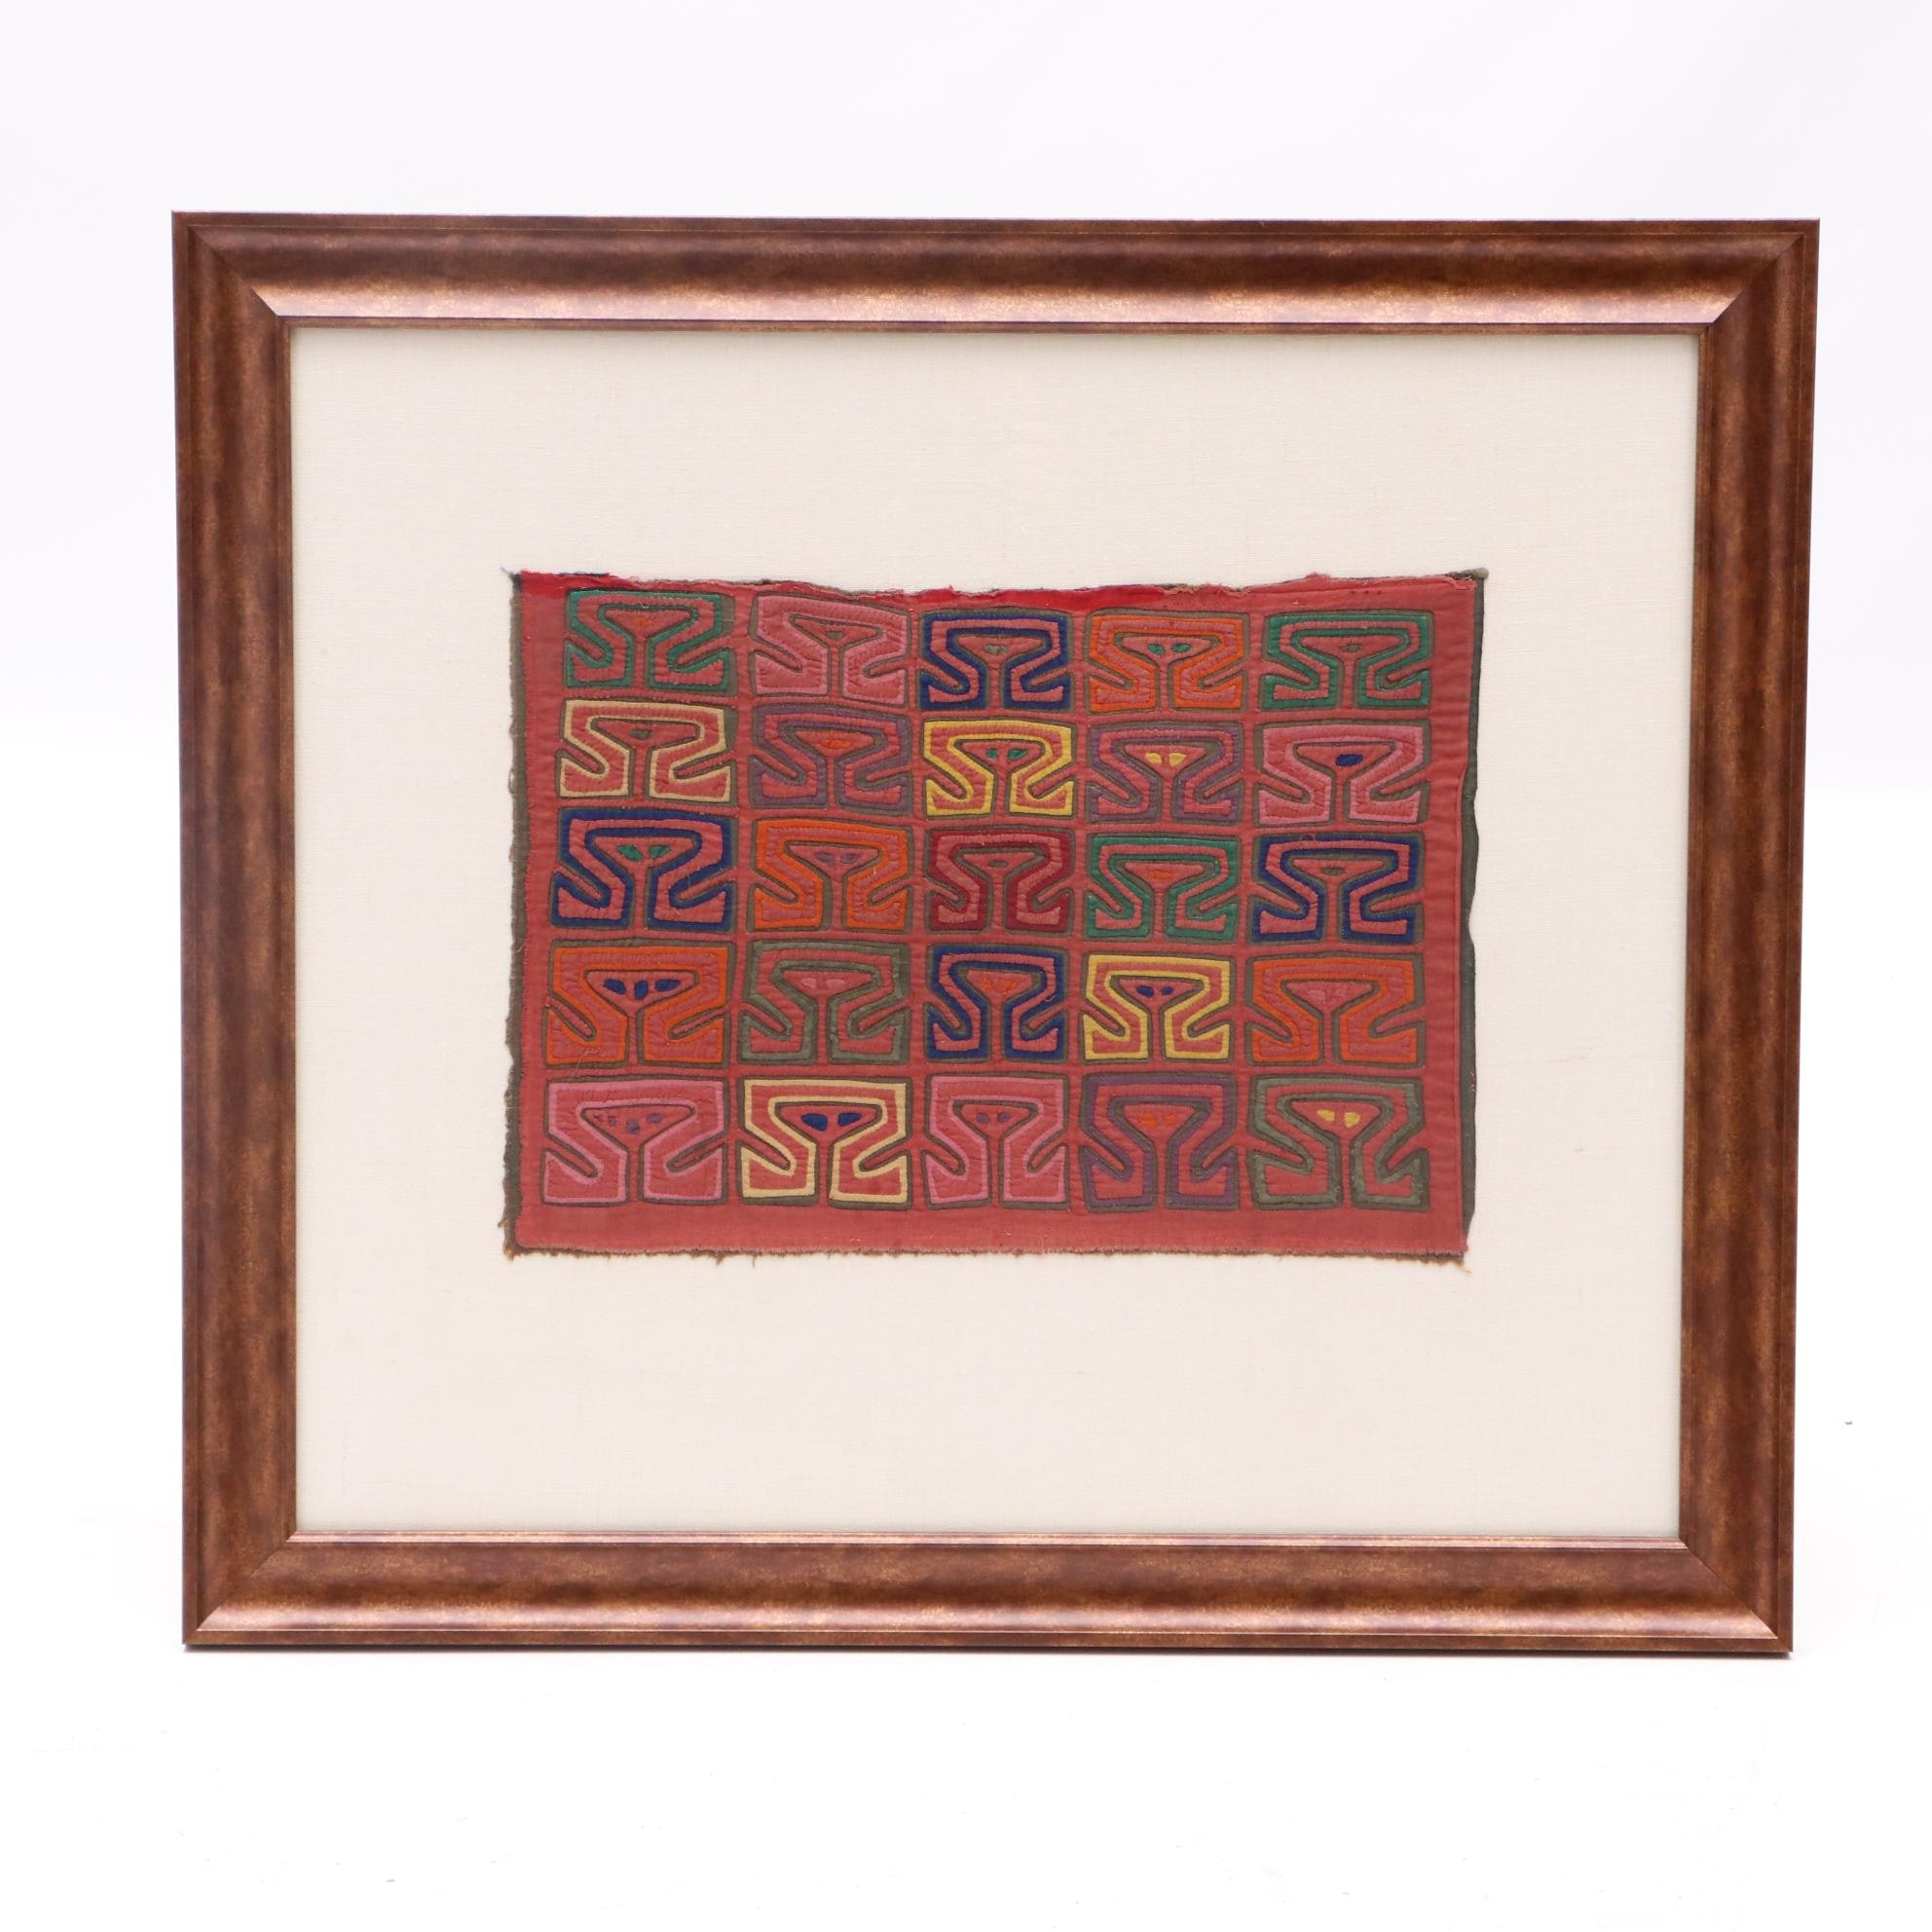 Framed Kuna Mola Textile Panel with Geometric Pattern